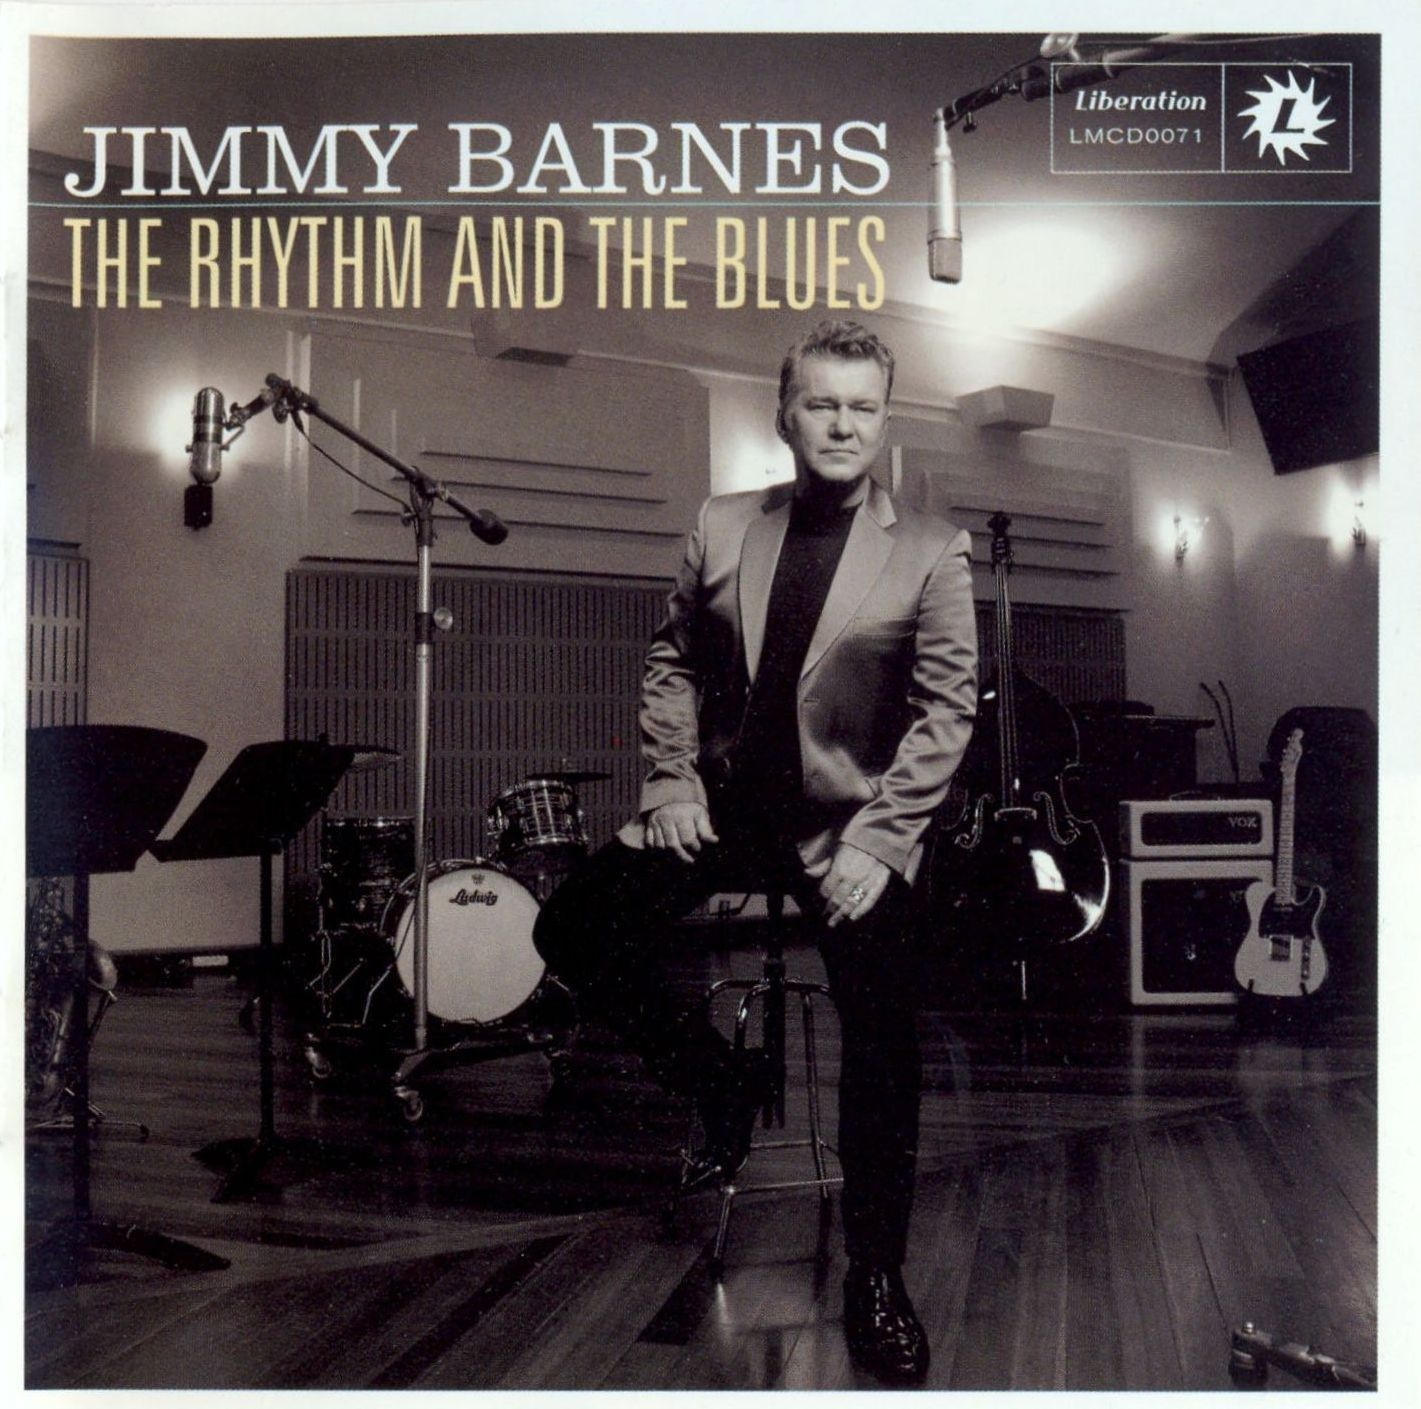 Jimmy Barnes - The Rhythm And The Blues album cover